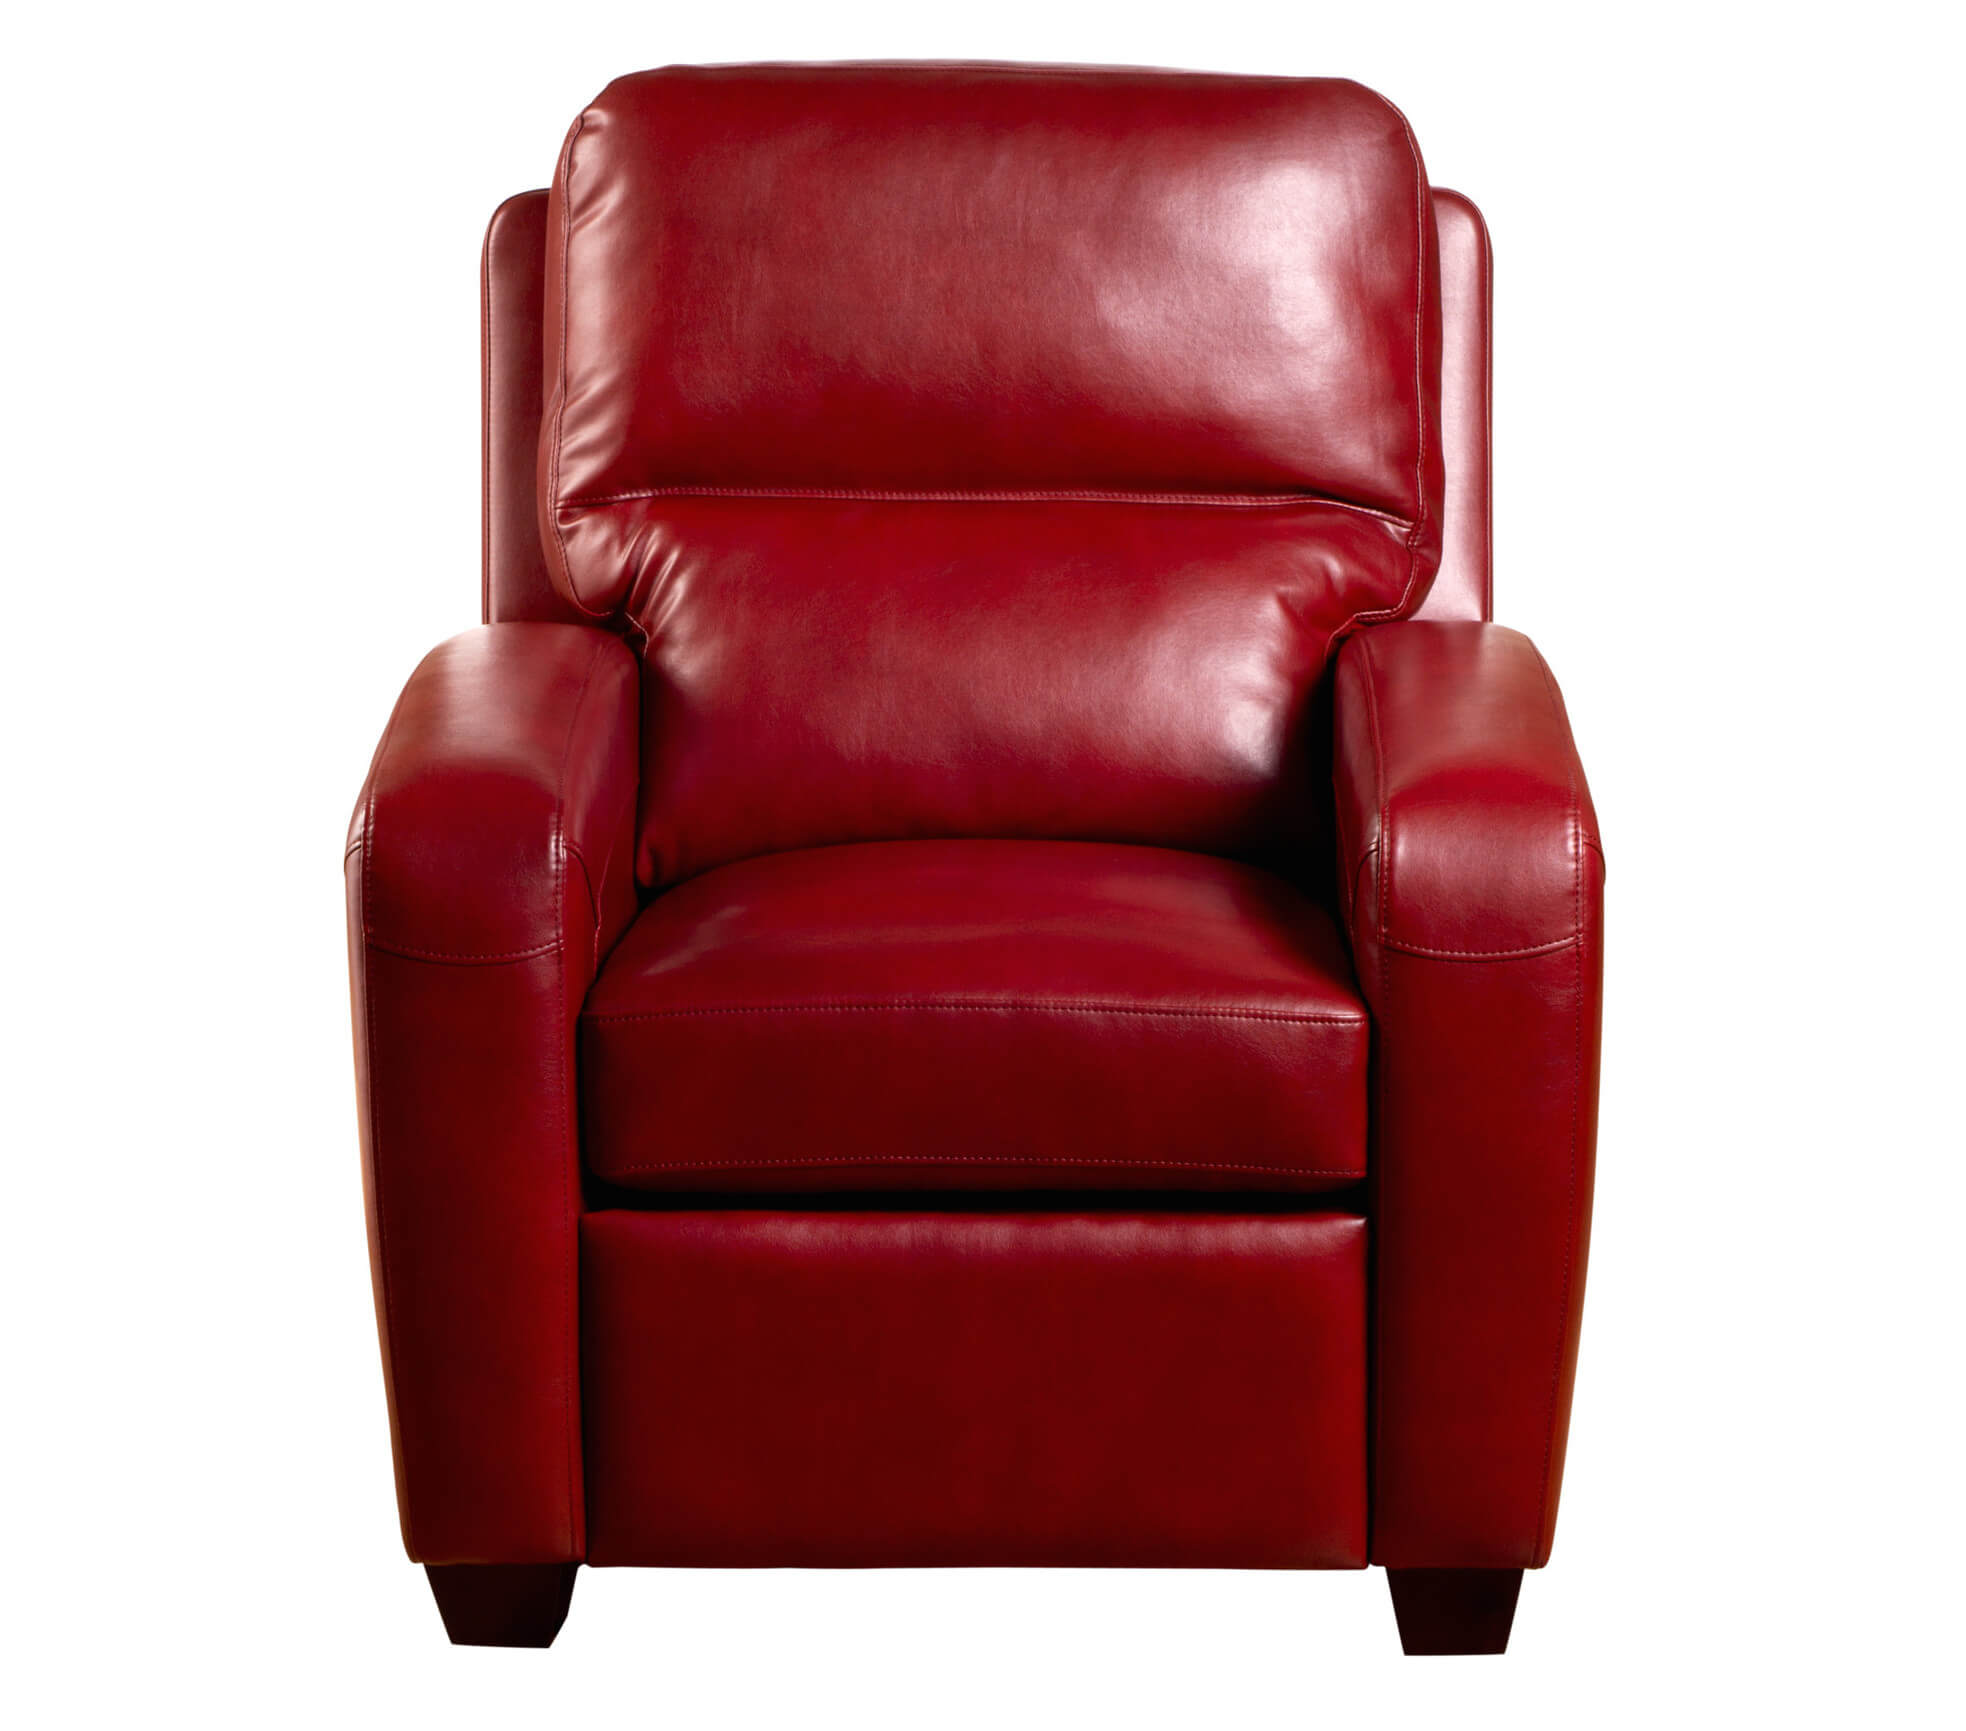 Our first recliner stands in the classic club chair shape when fully upright. Red leather makes a bold appearance, while thick cushioning provides high end comfort.